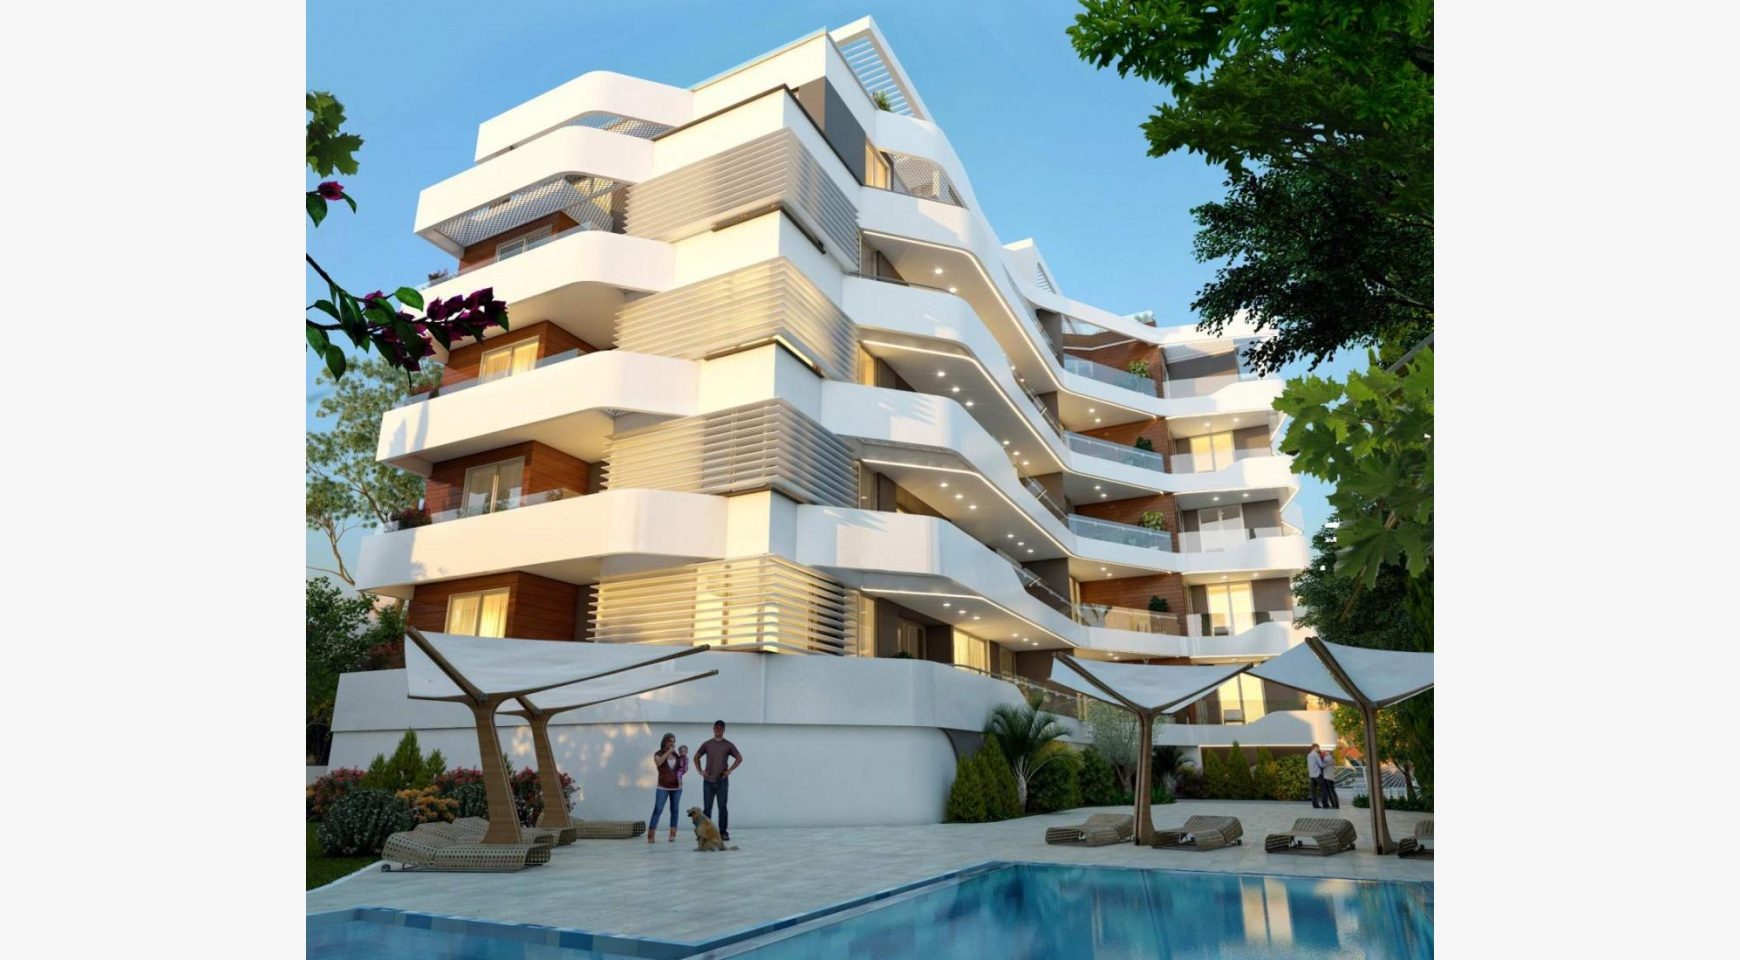 New 2 Bedroom Apartment in a Contemporary Complex near the Sea - 3